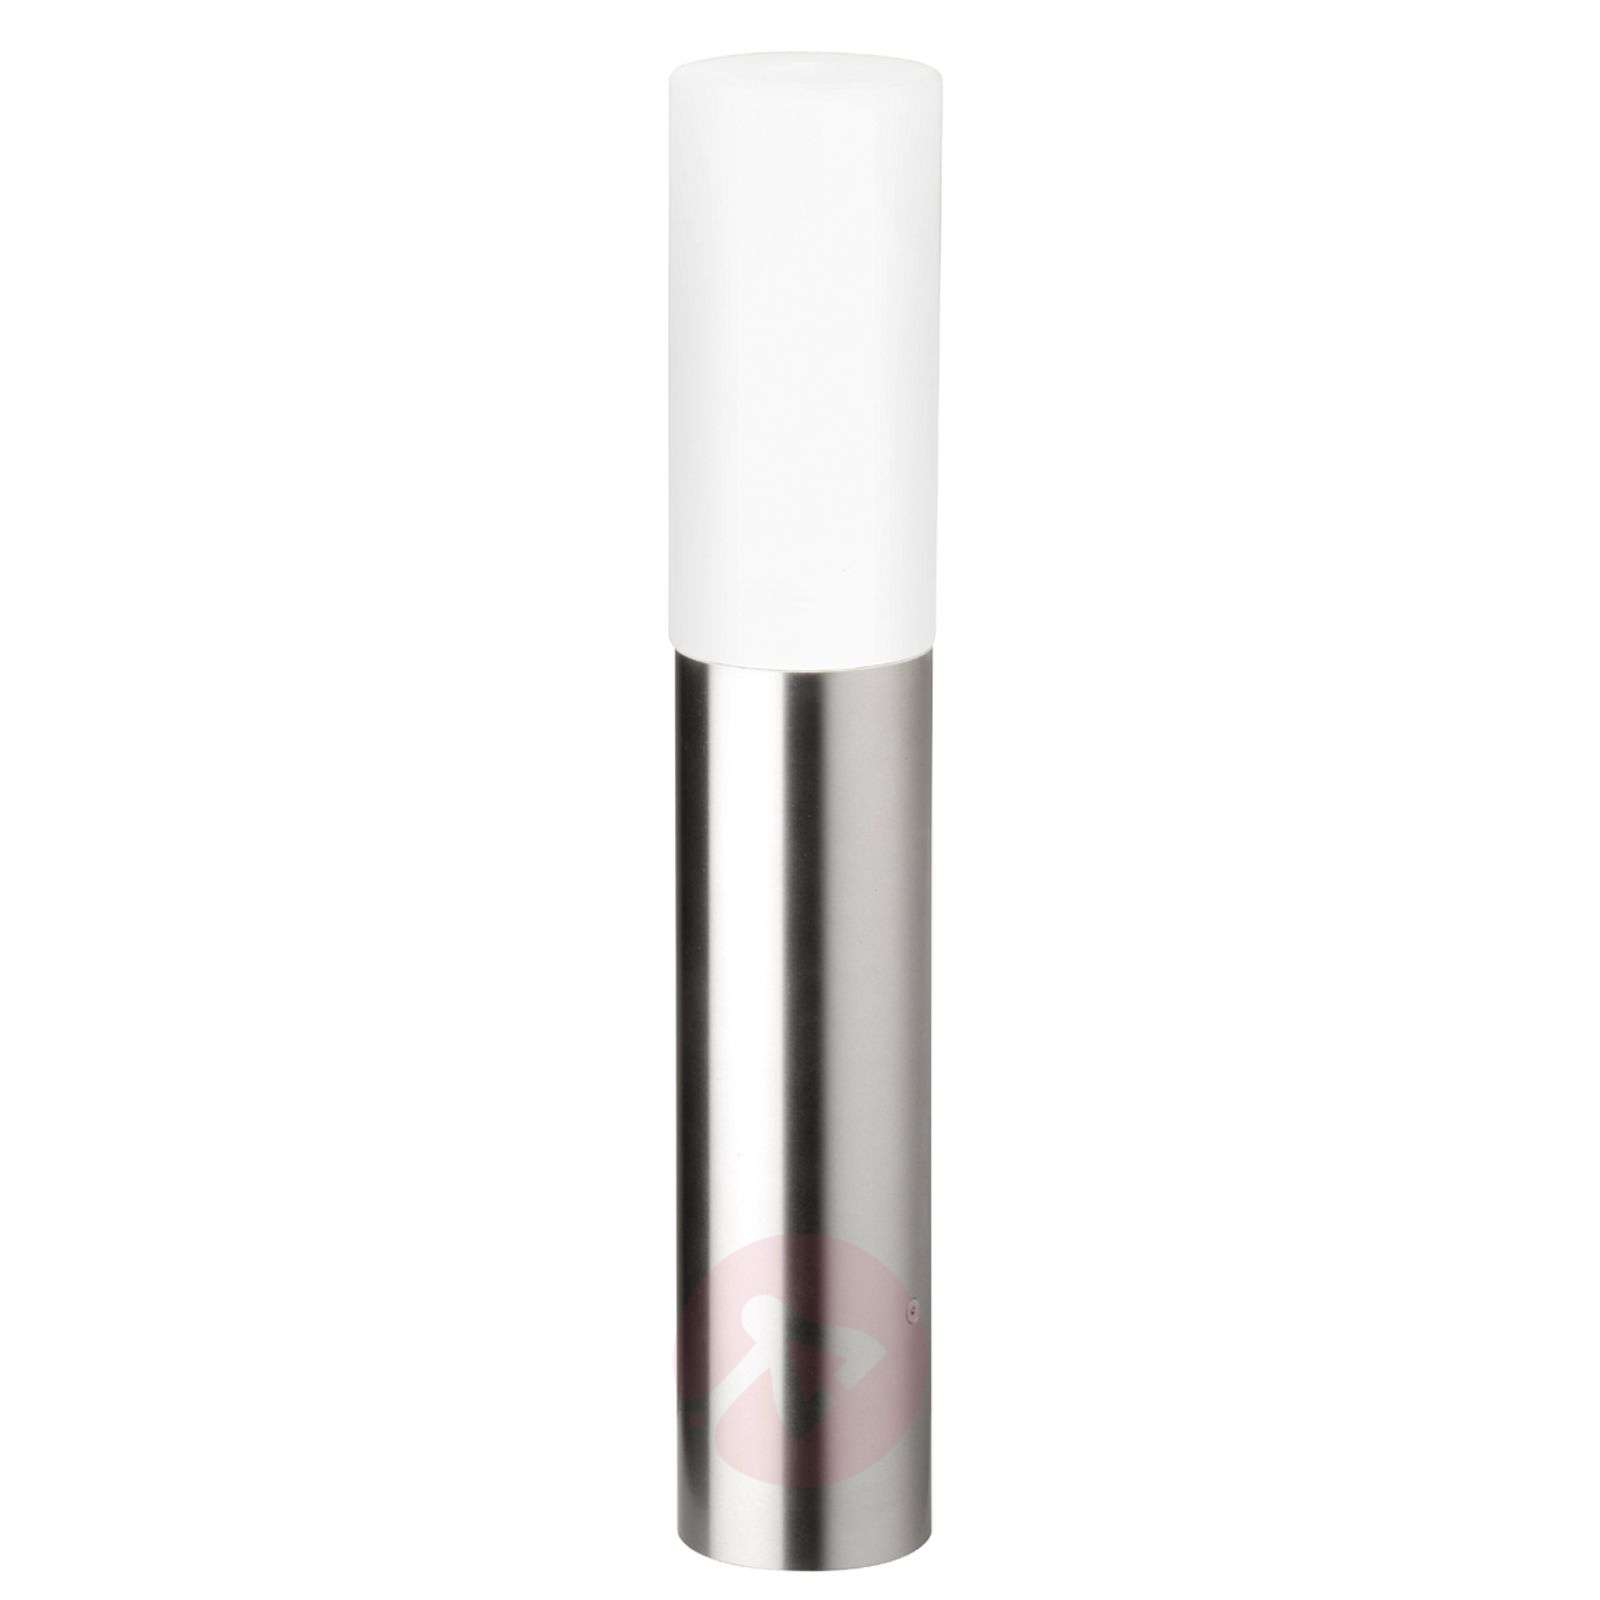 Polos decorative pillar light, stainless steel-2011208-01